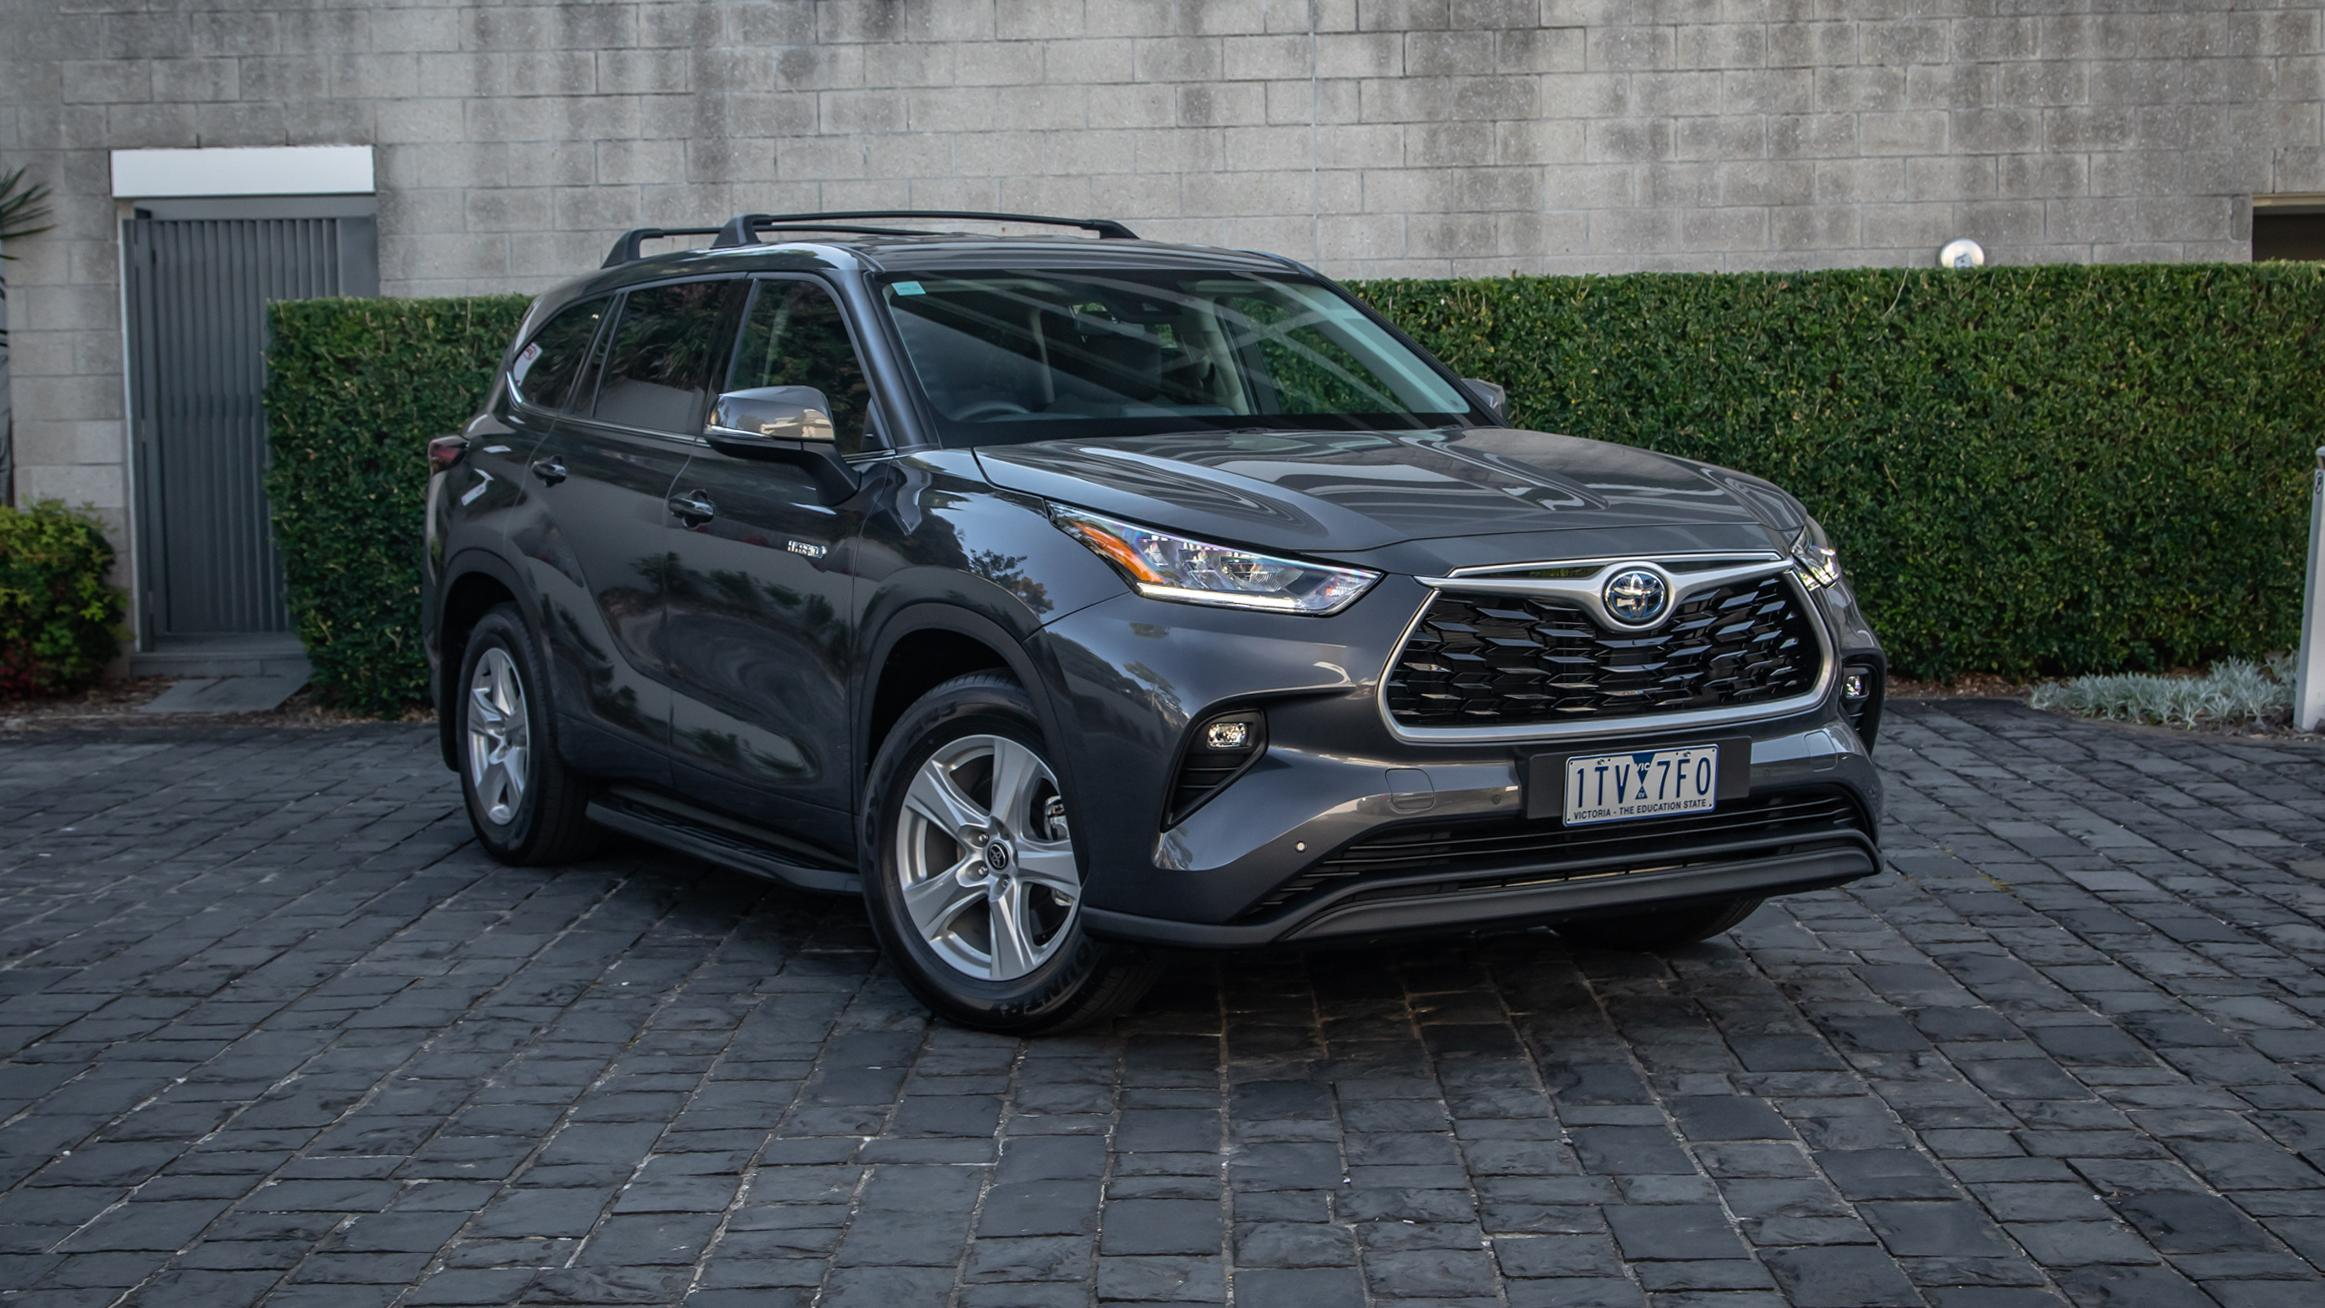 2022 Toyota Kluger Hybrid review